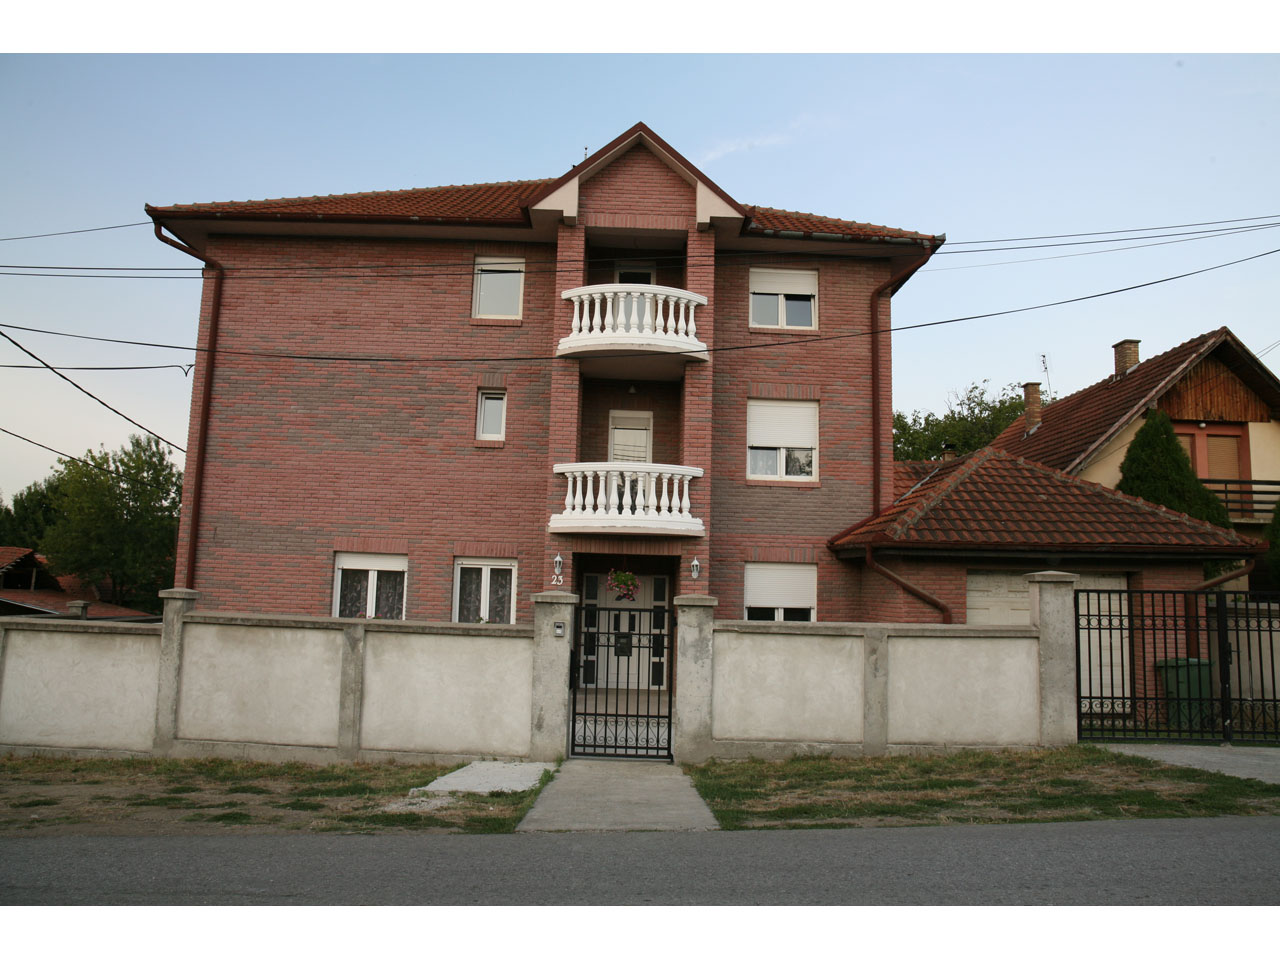 ZLATNO SRCE HOME FOR OLD Homes and care for the elderly Beograd